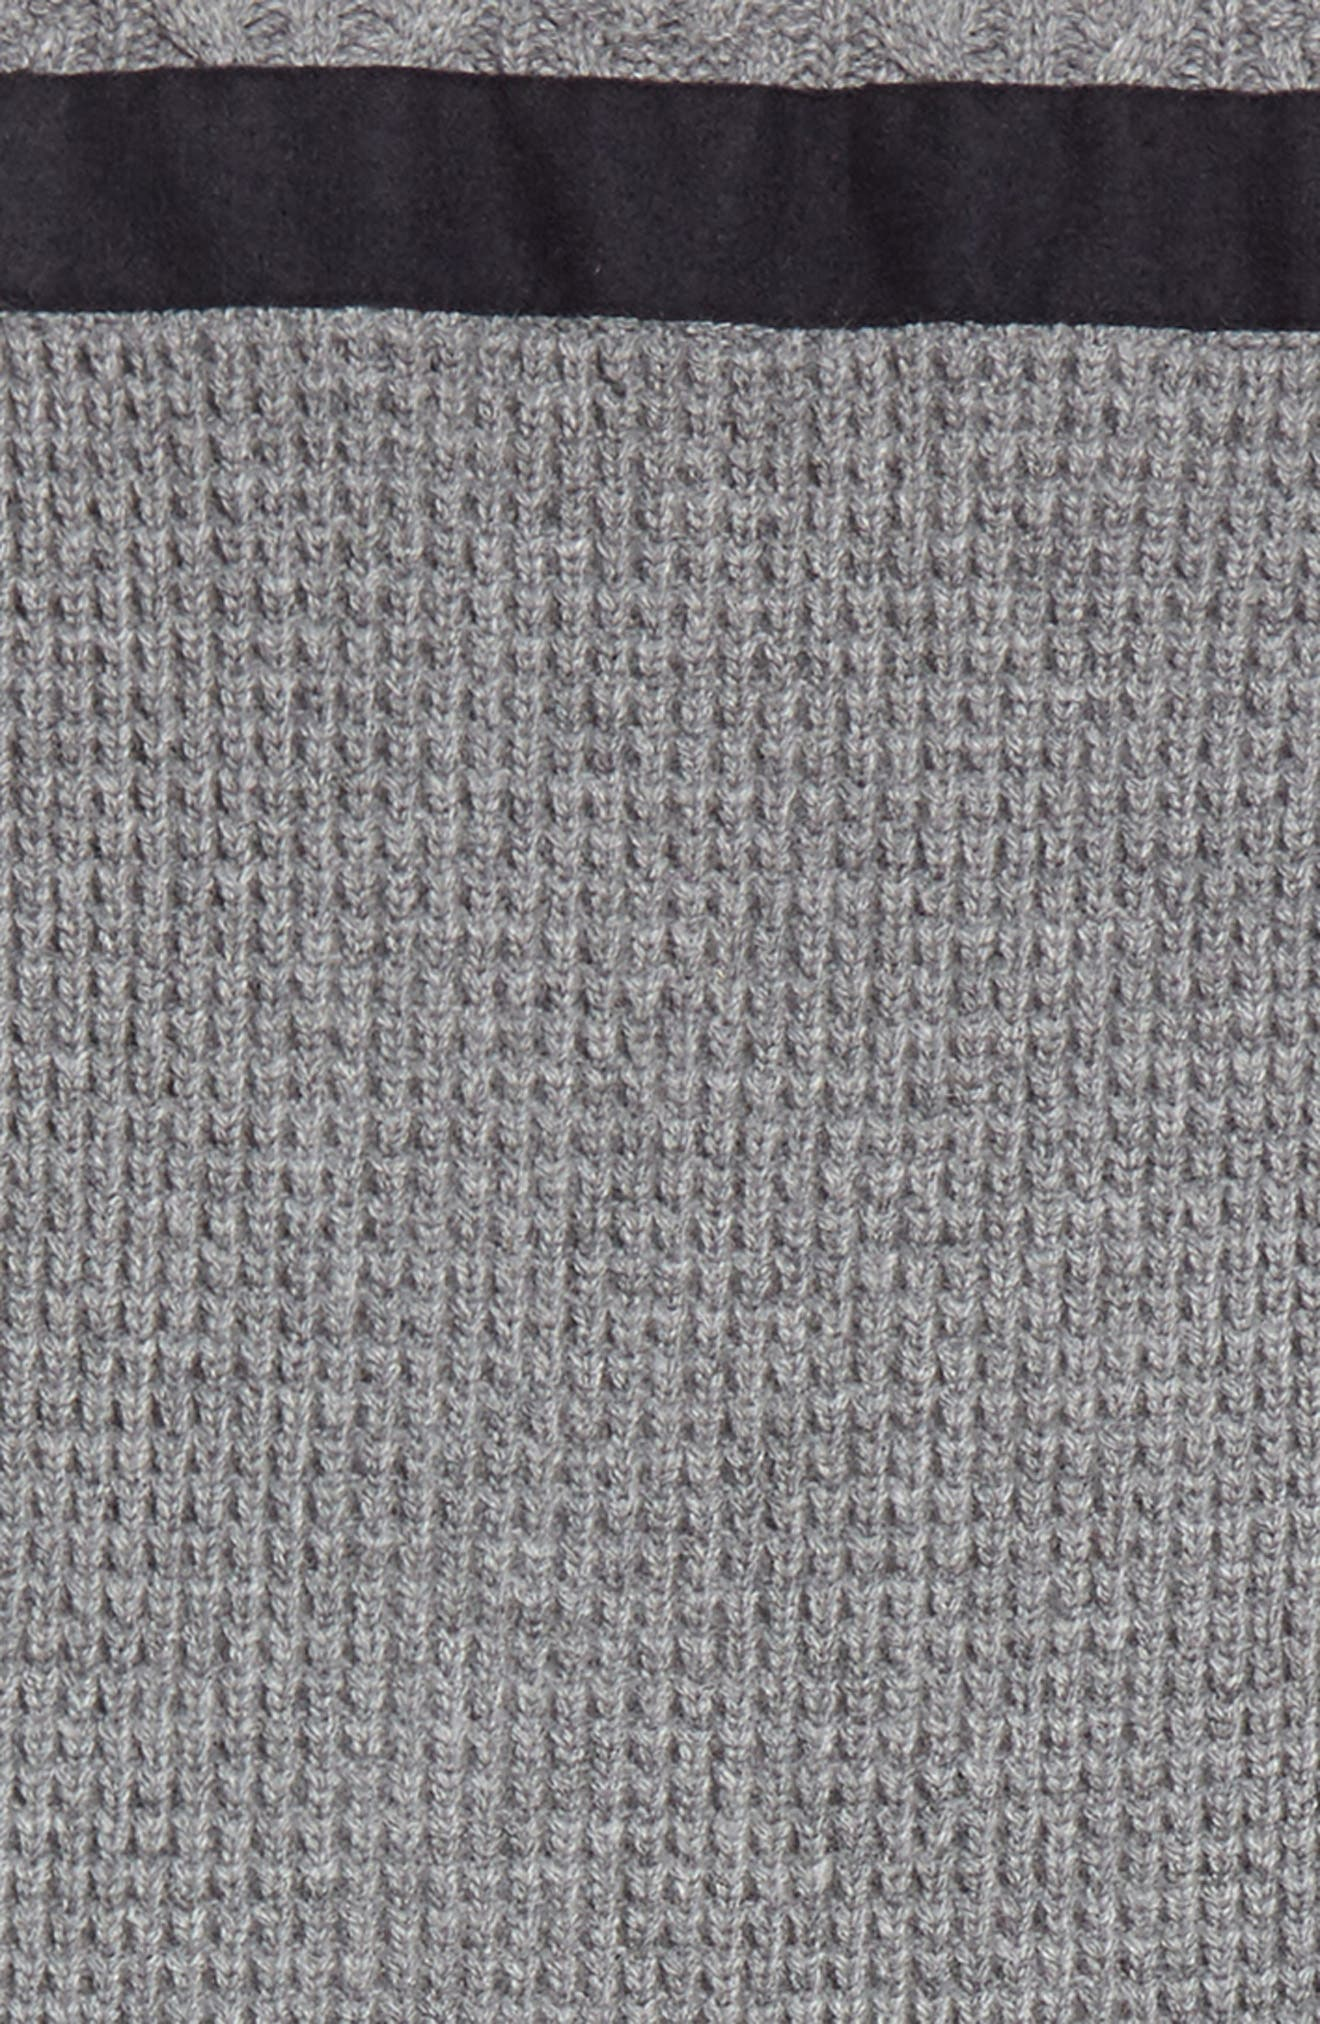 Textured Wool & Cashmere Scarf,                             Alternate thumbnail 2, color,                             031